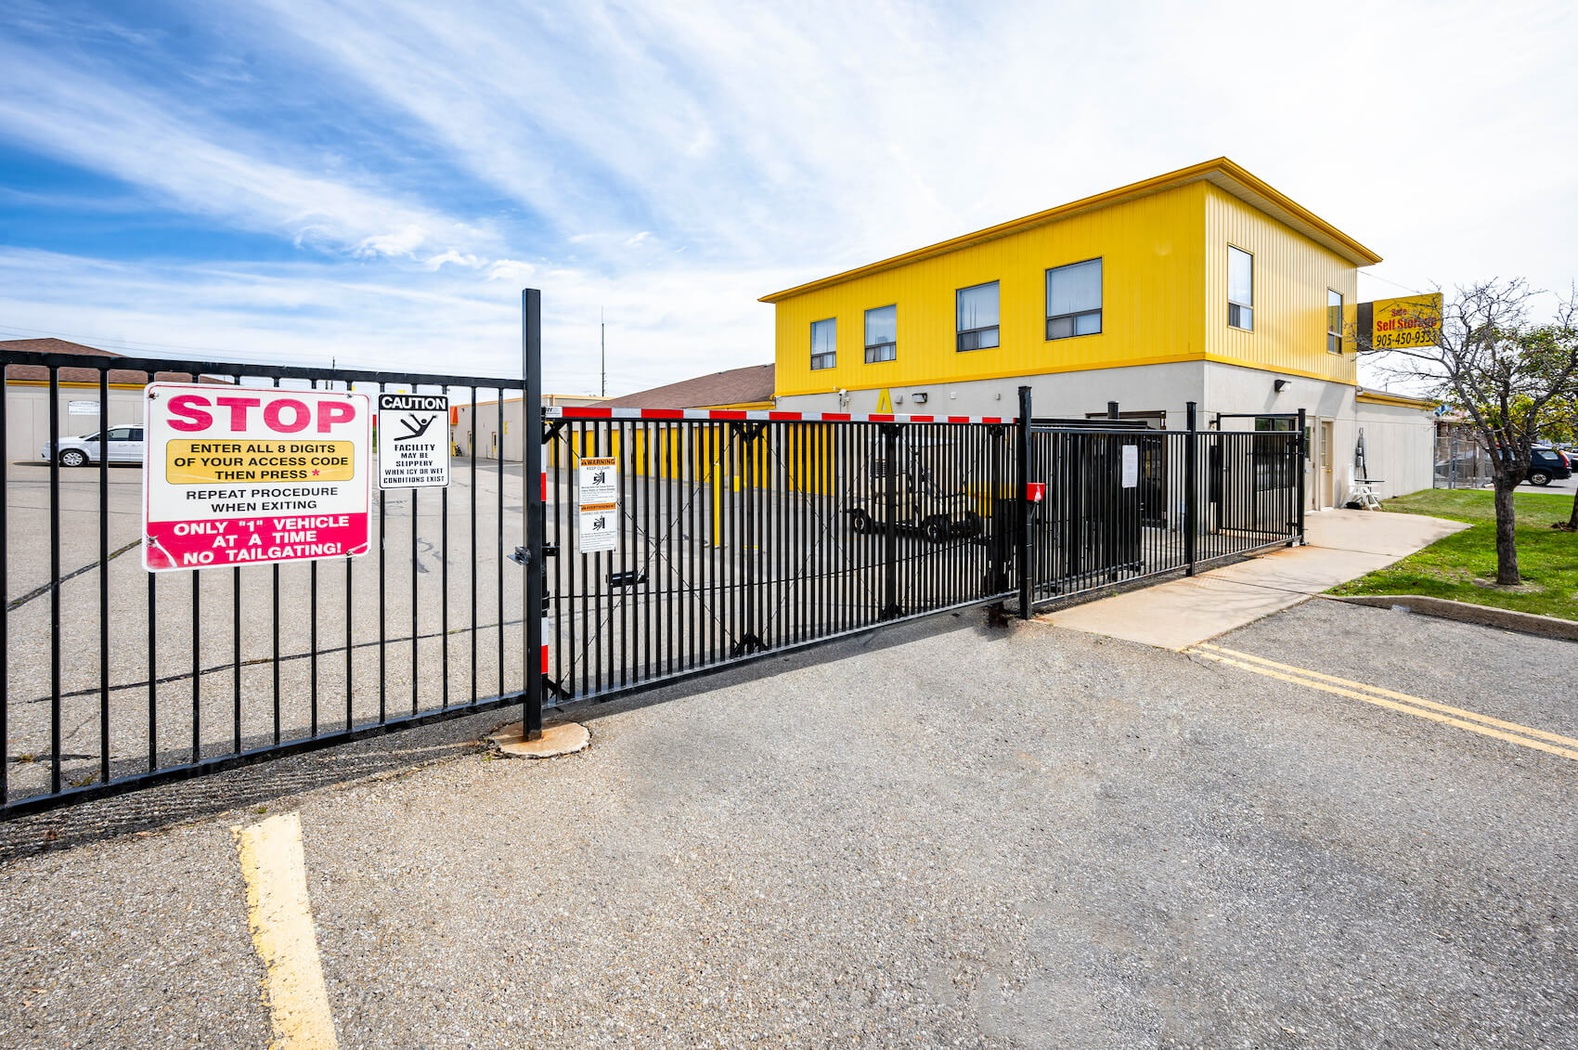 Rent Brampton storage units at 17 Ardglen Drive. We offer a wide-range of affordable self storage units and your first 4 weeks are free!